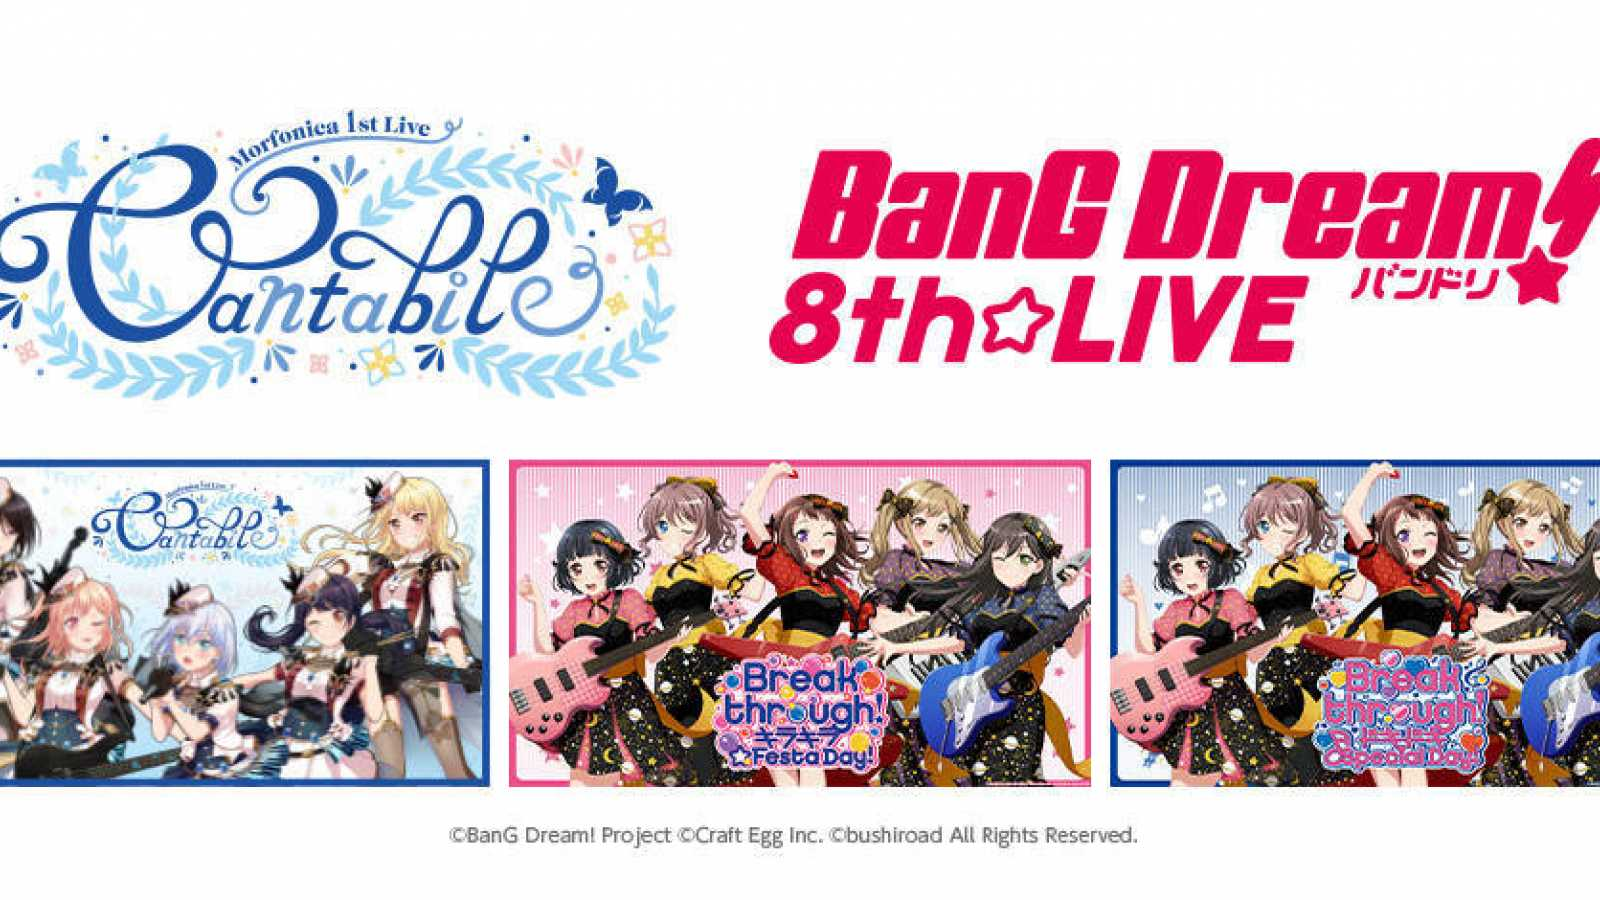 Morfonica and Poppin'Party Concerts to Stream Worldwide © BanG Dream! Project ©Craft Egg Inc. ©bushiroad All Rights Reserved.